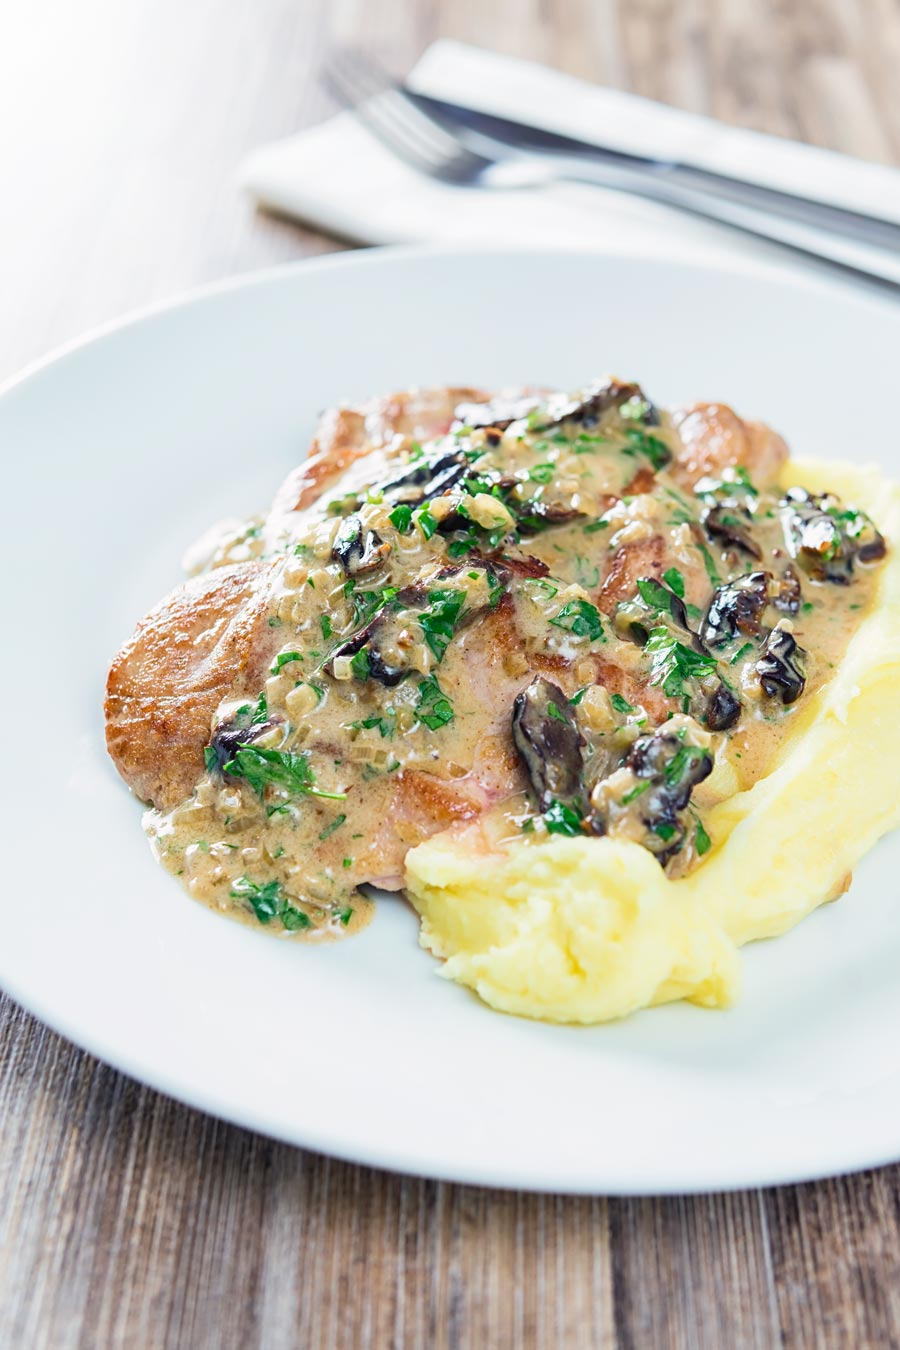 Pork with prunes is a pretty classic combination and here they feature in a brandy cream sauce alongside pork tenderloin and buttery mashed potato.